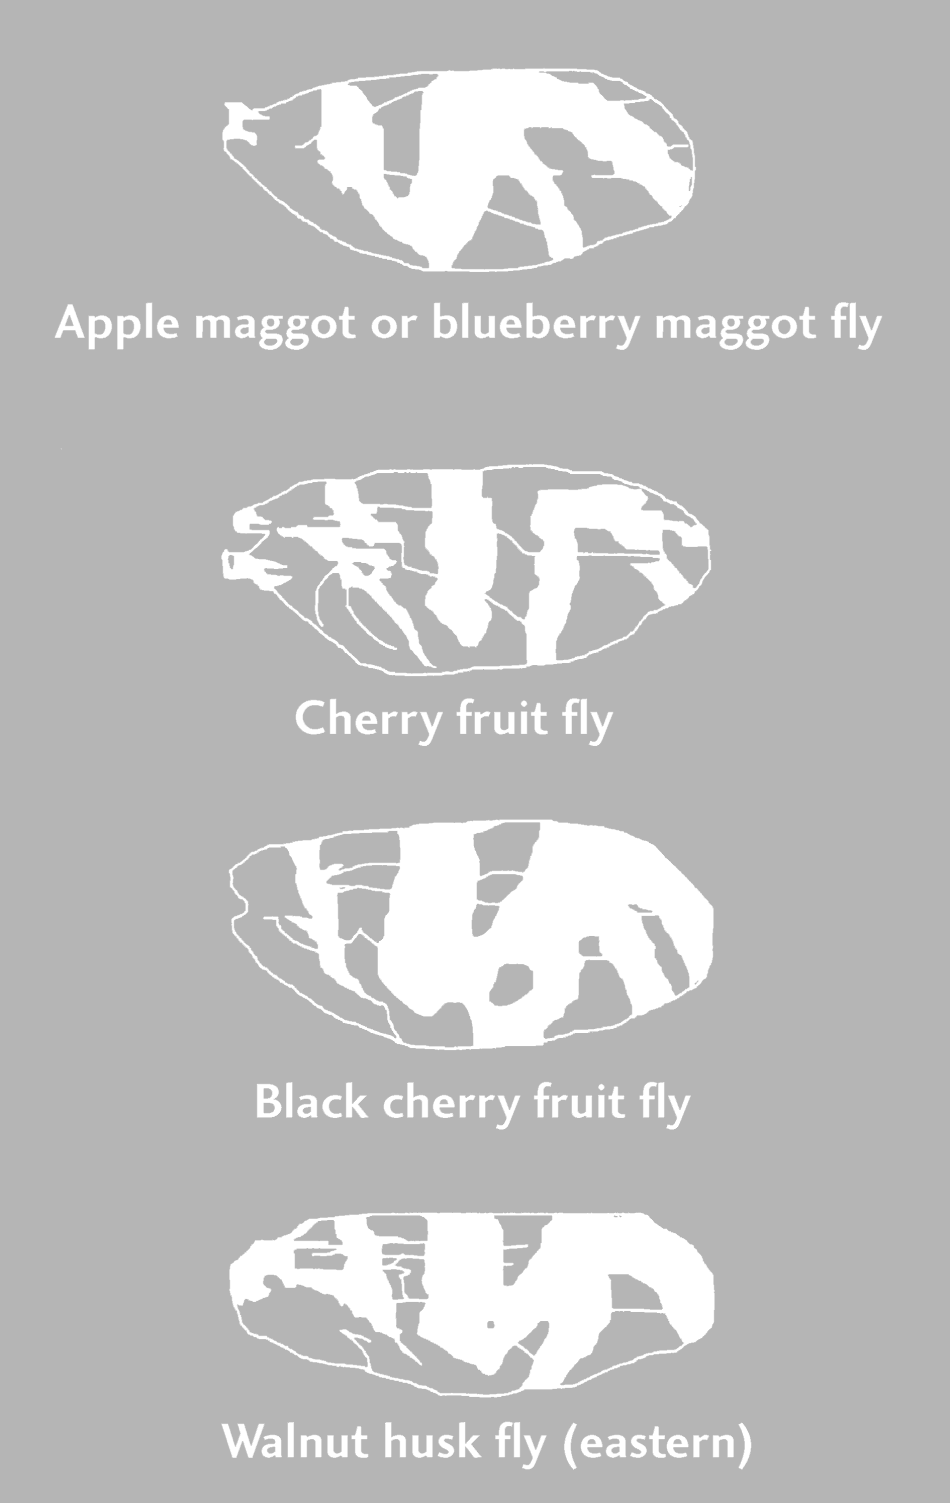 Wing patterns of apple maggot and related species.